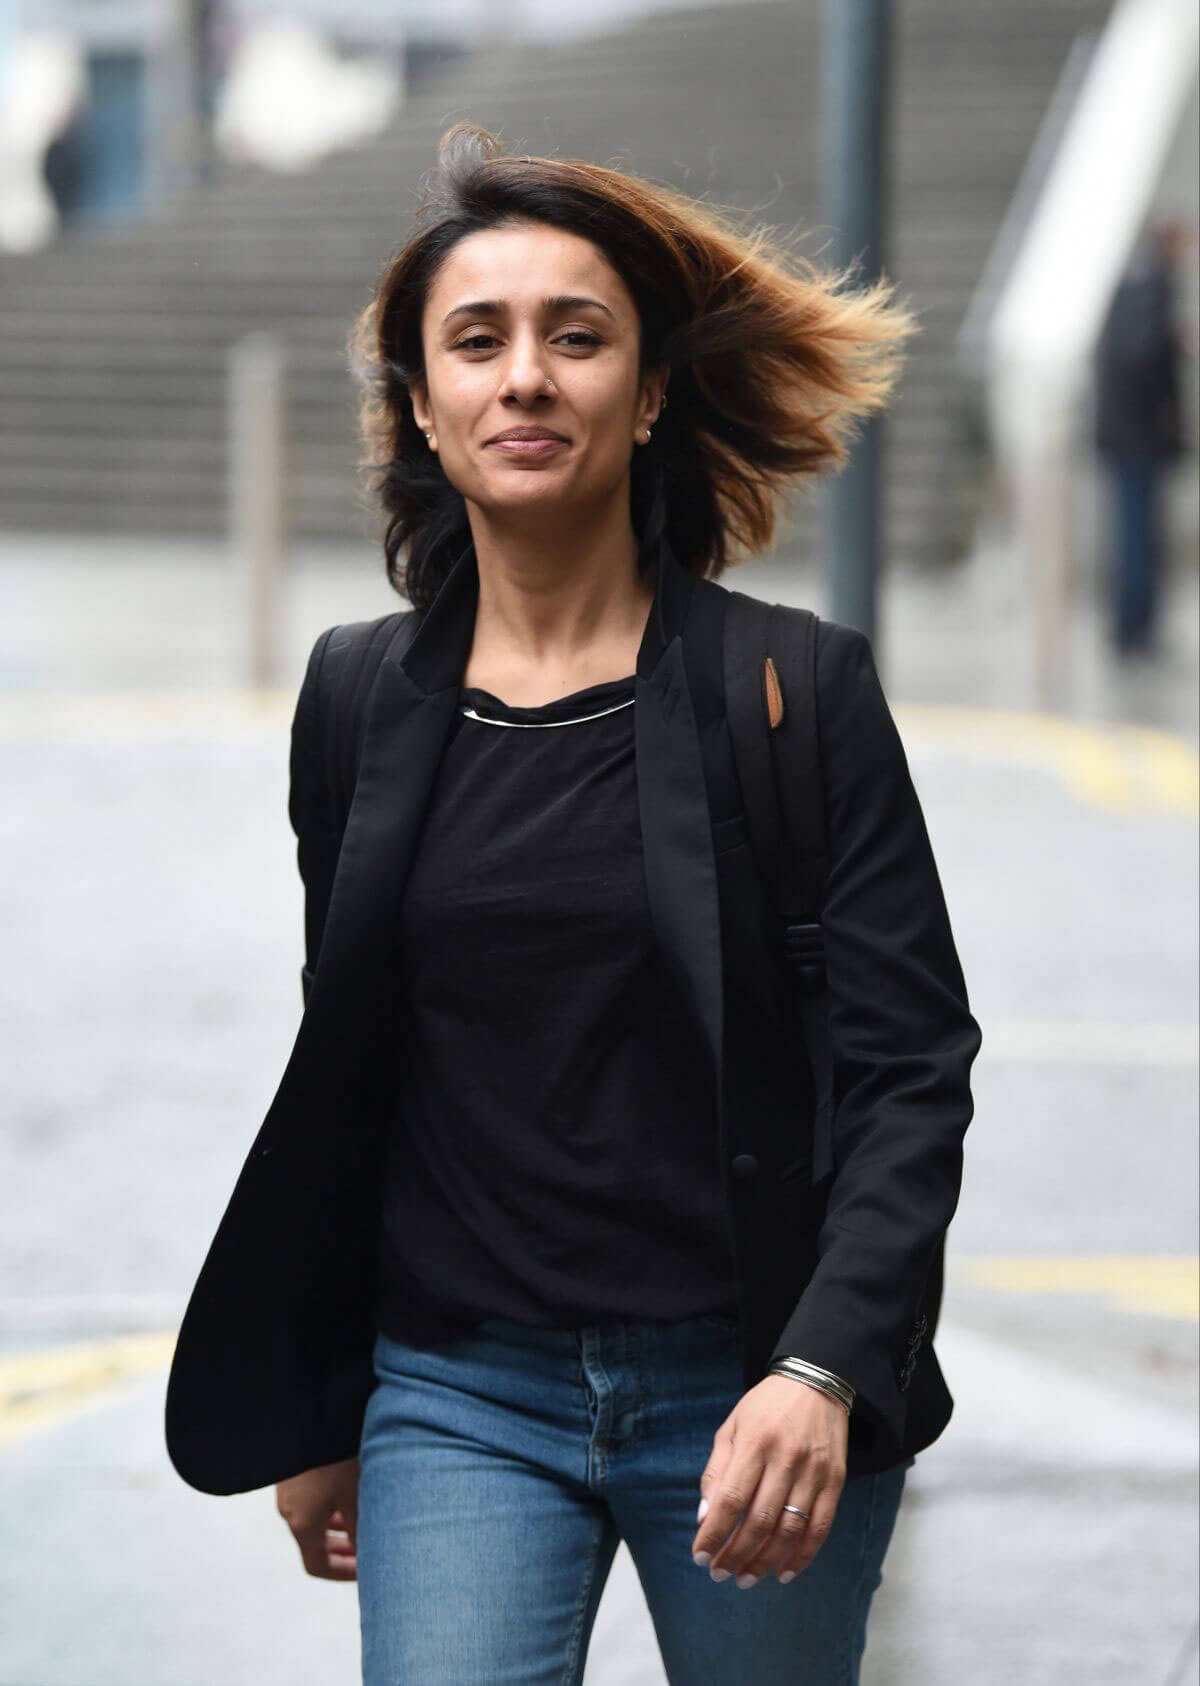 Anita Rani Leaves Her Hotel in Birmingham